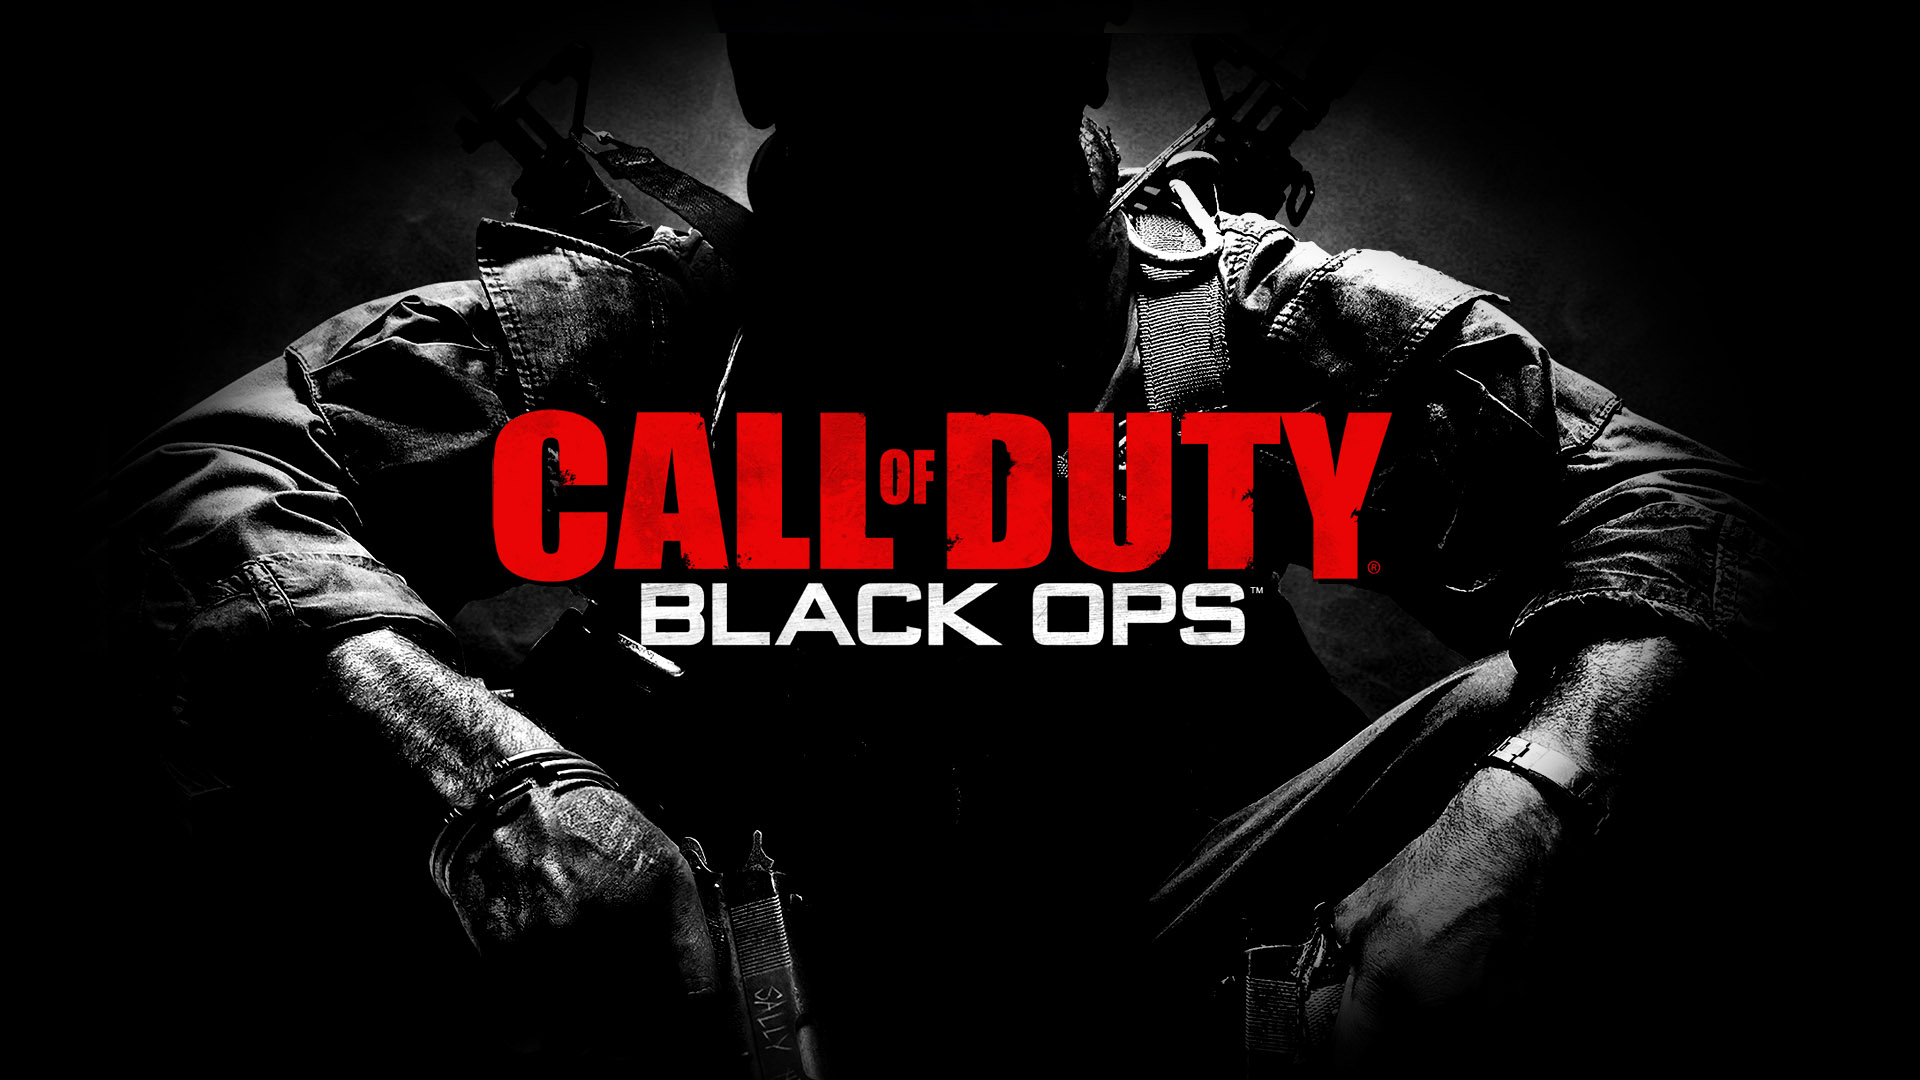 10 Best images about Call Of Duty-Black Ops l & ll on Pinterest